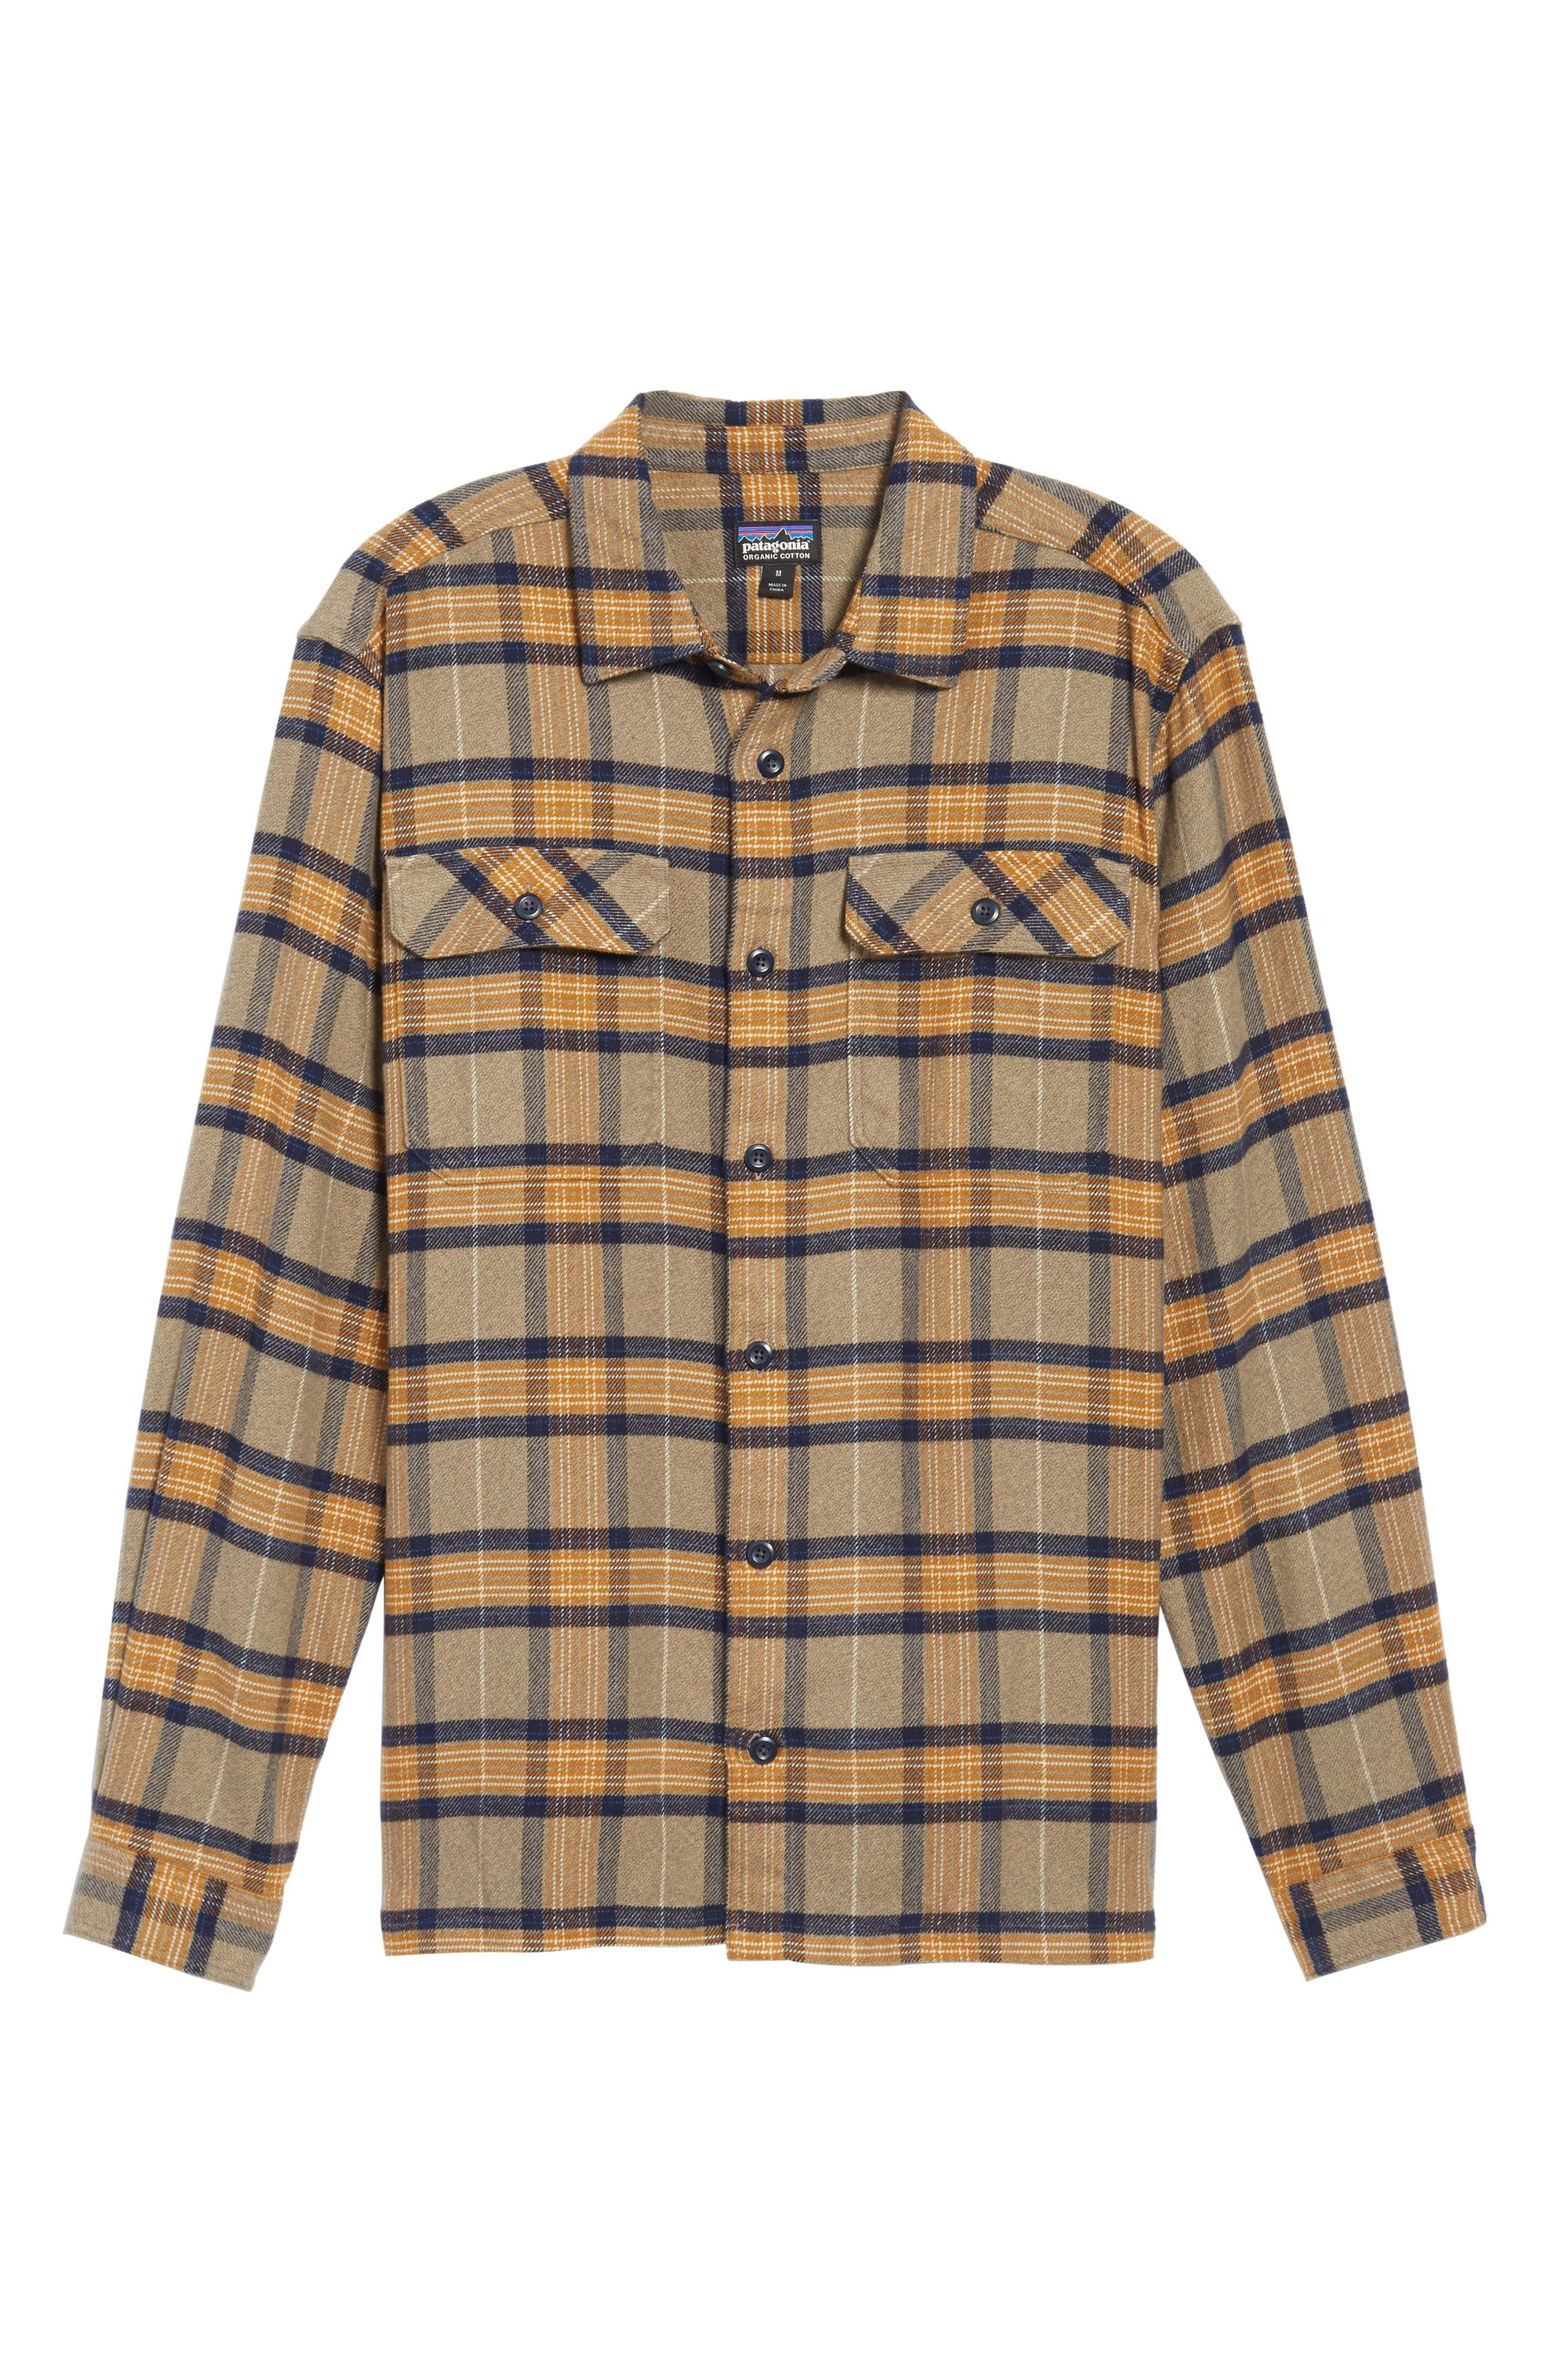 Patagonia 'Fjord' Regular Fit Organic Cotton Flannel Shirt